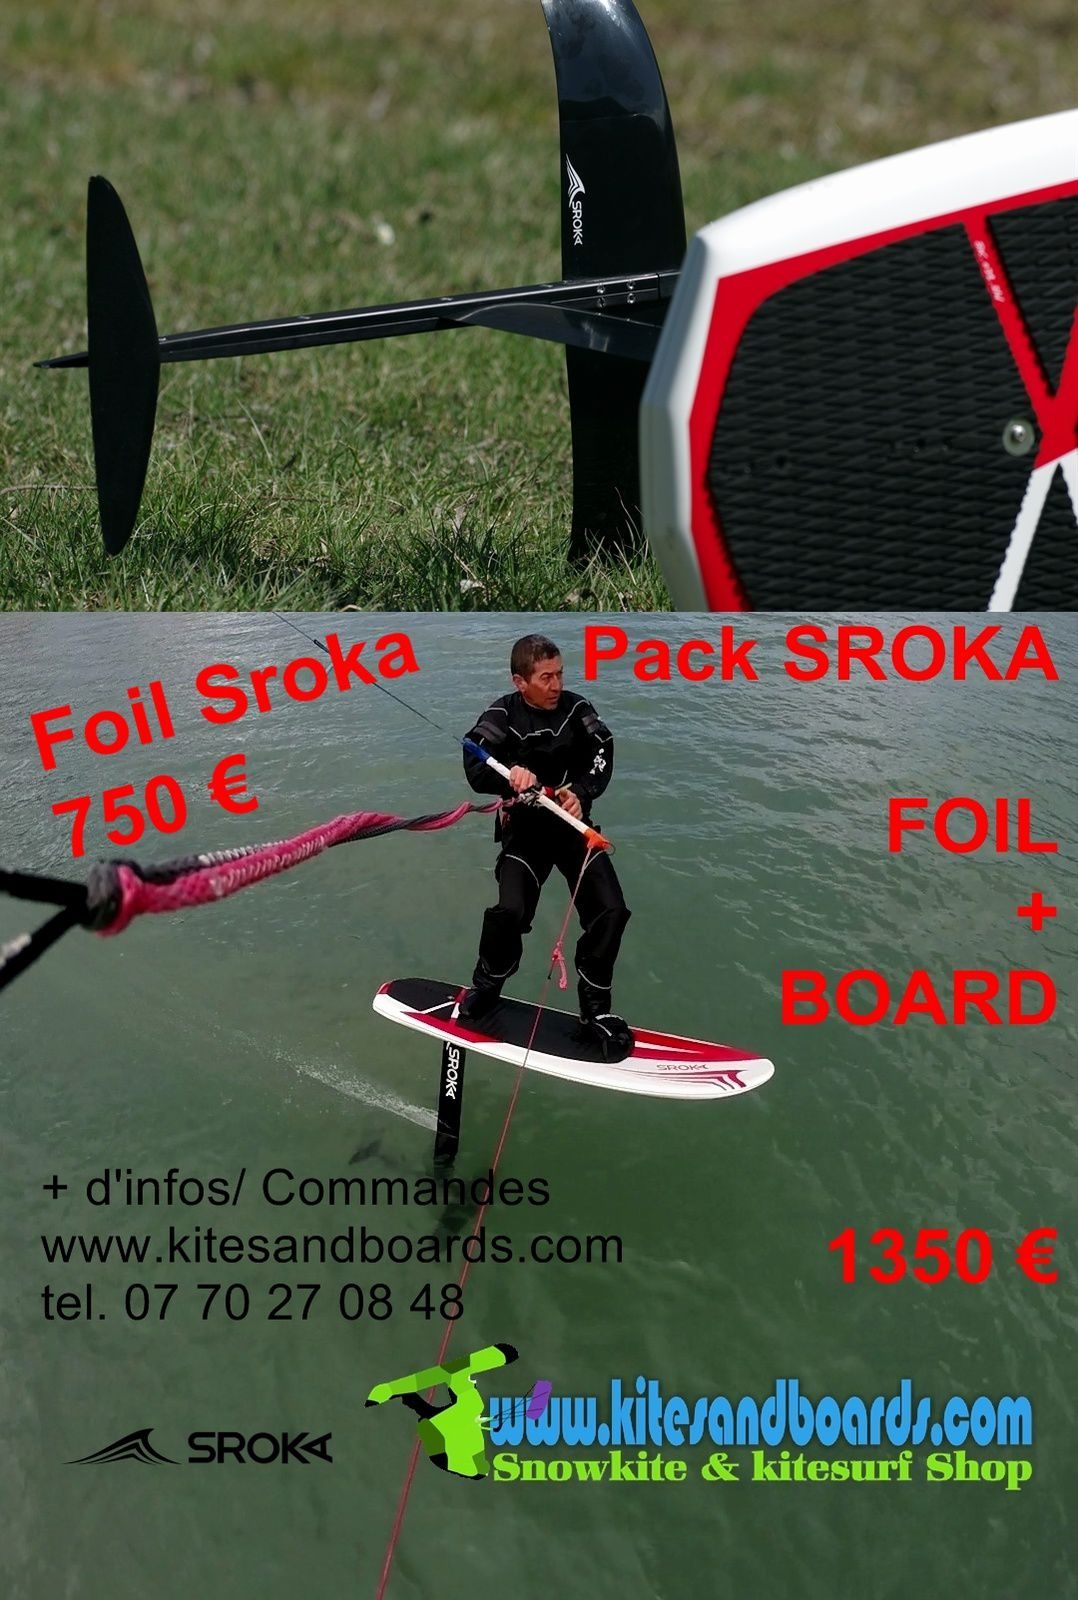 foil sroka au shop Kites And Boards Grenoble